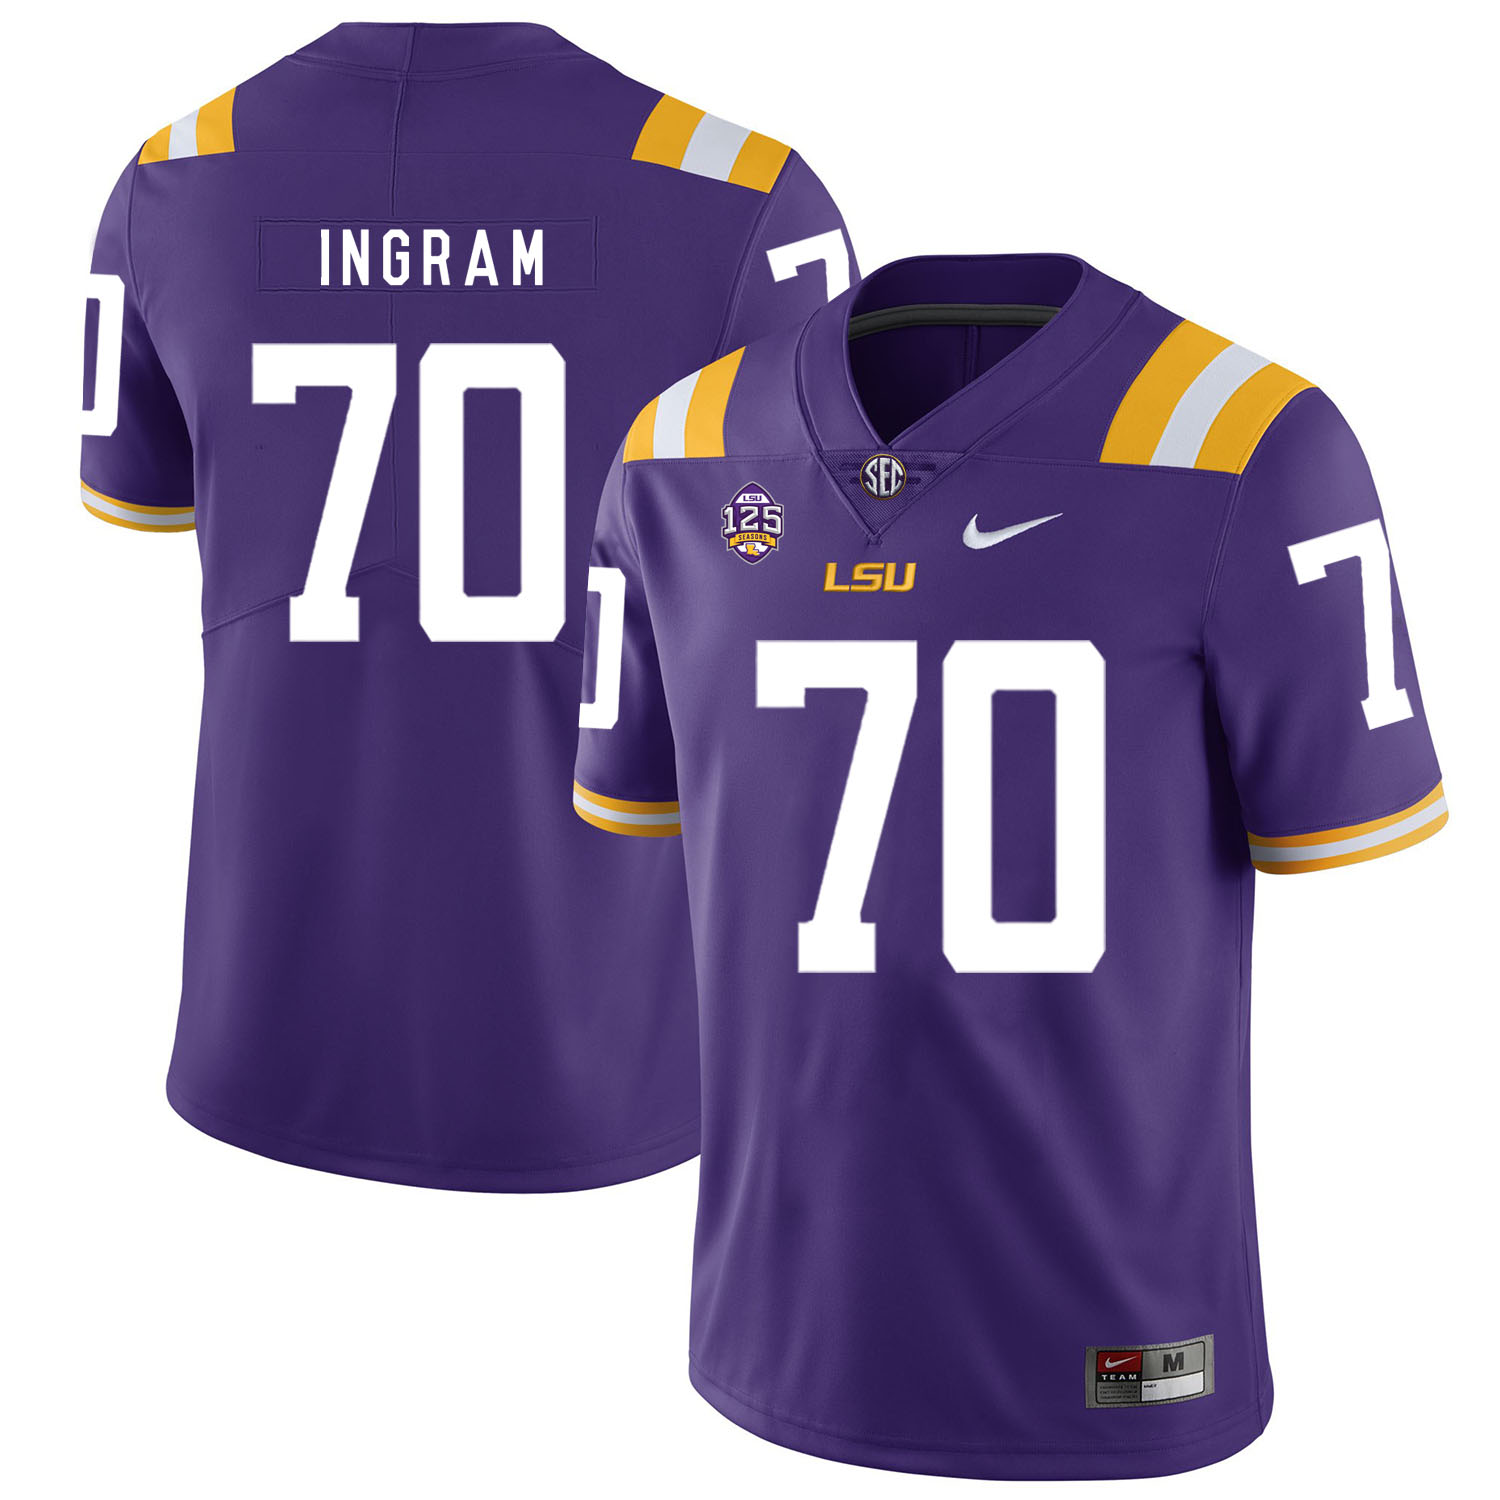 LSU Tigers 70 Edward Ingram Purple Nike College Football Jersey